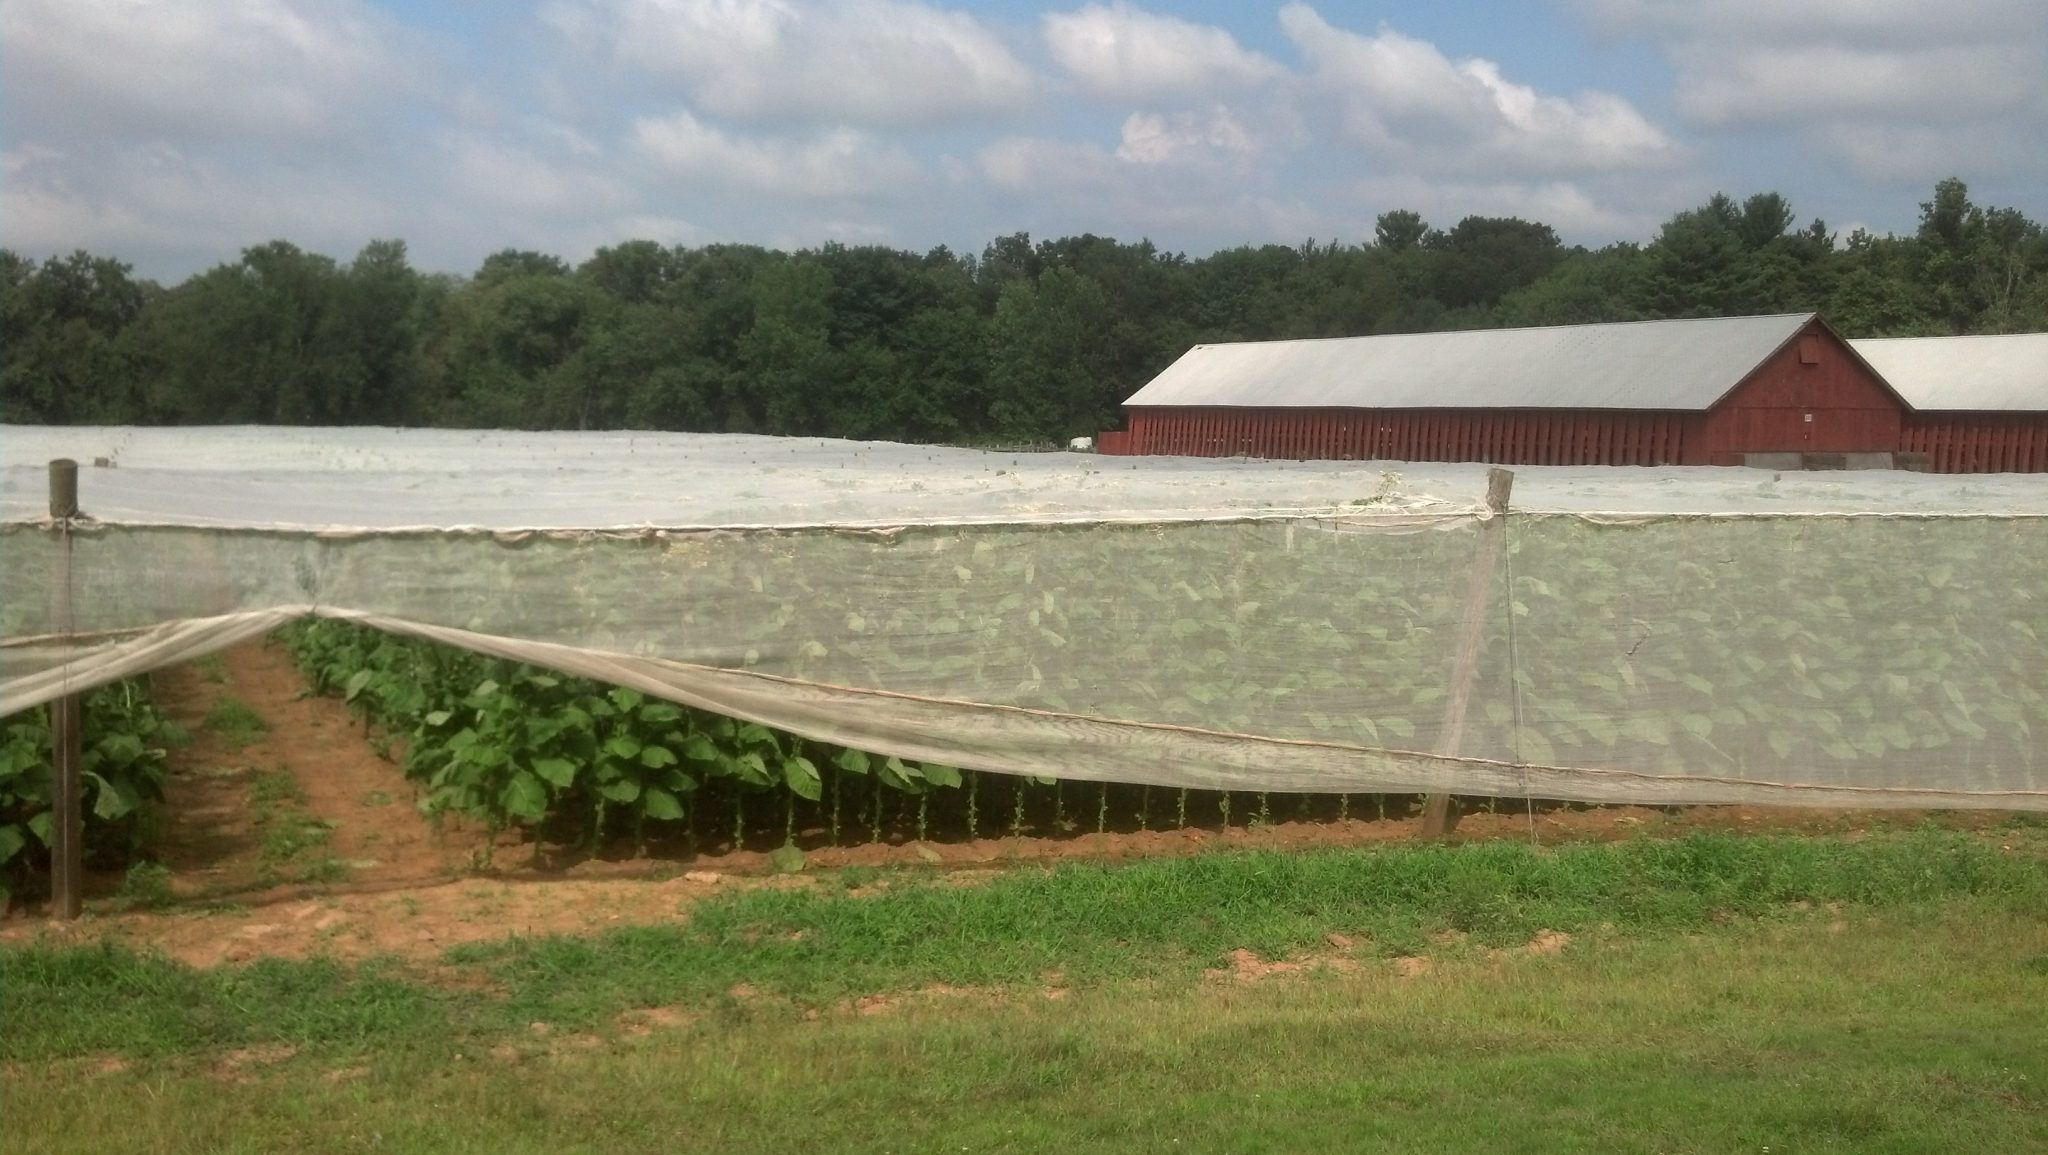 popular connecticut cigar resurgence - connecticut cigars - field of connecticut shade grown tobacco